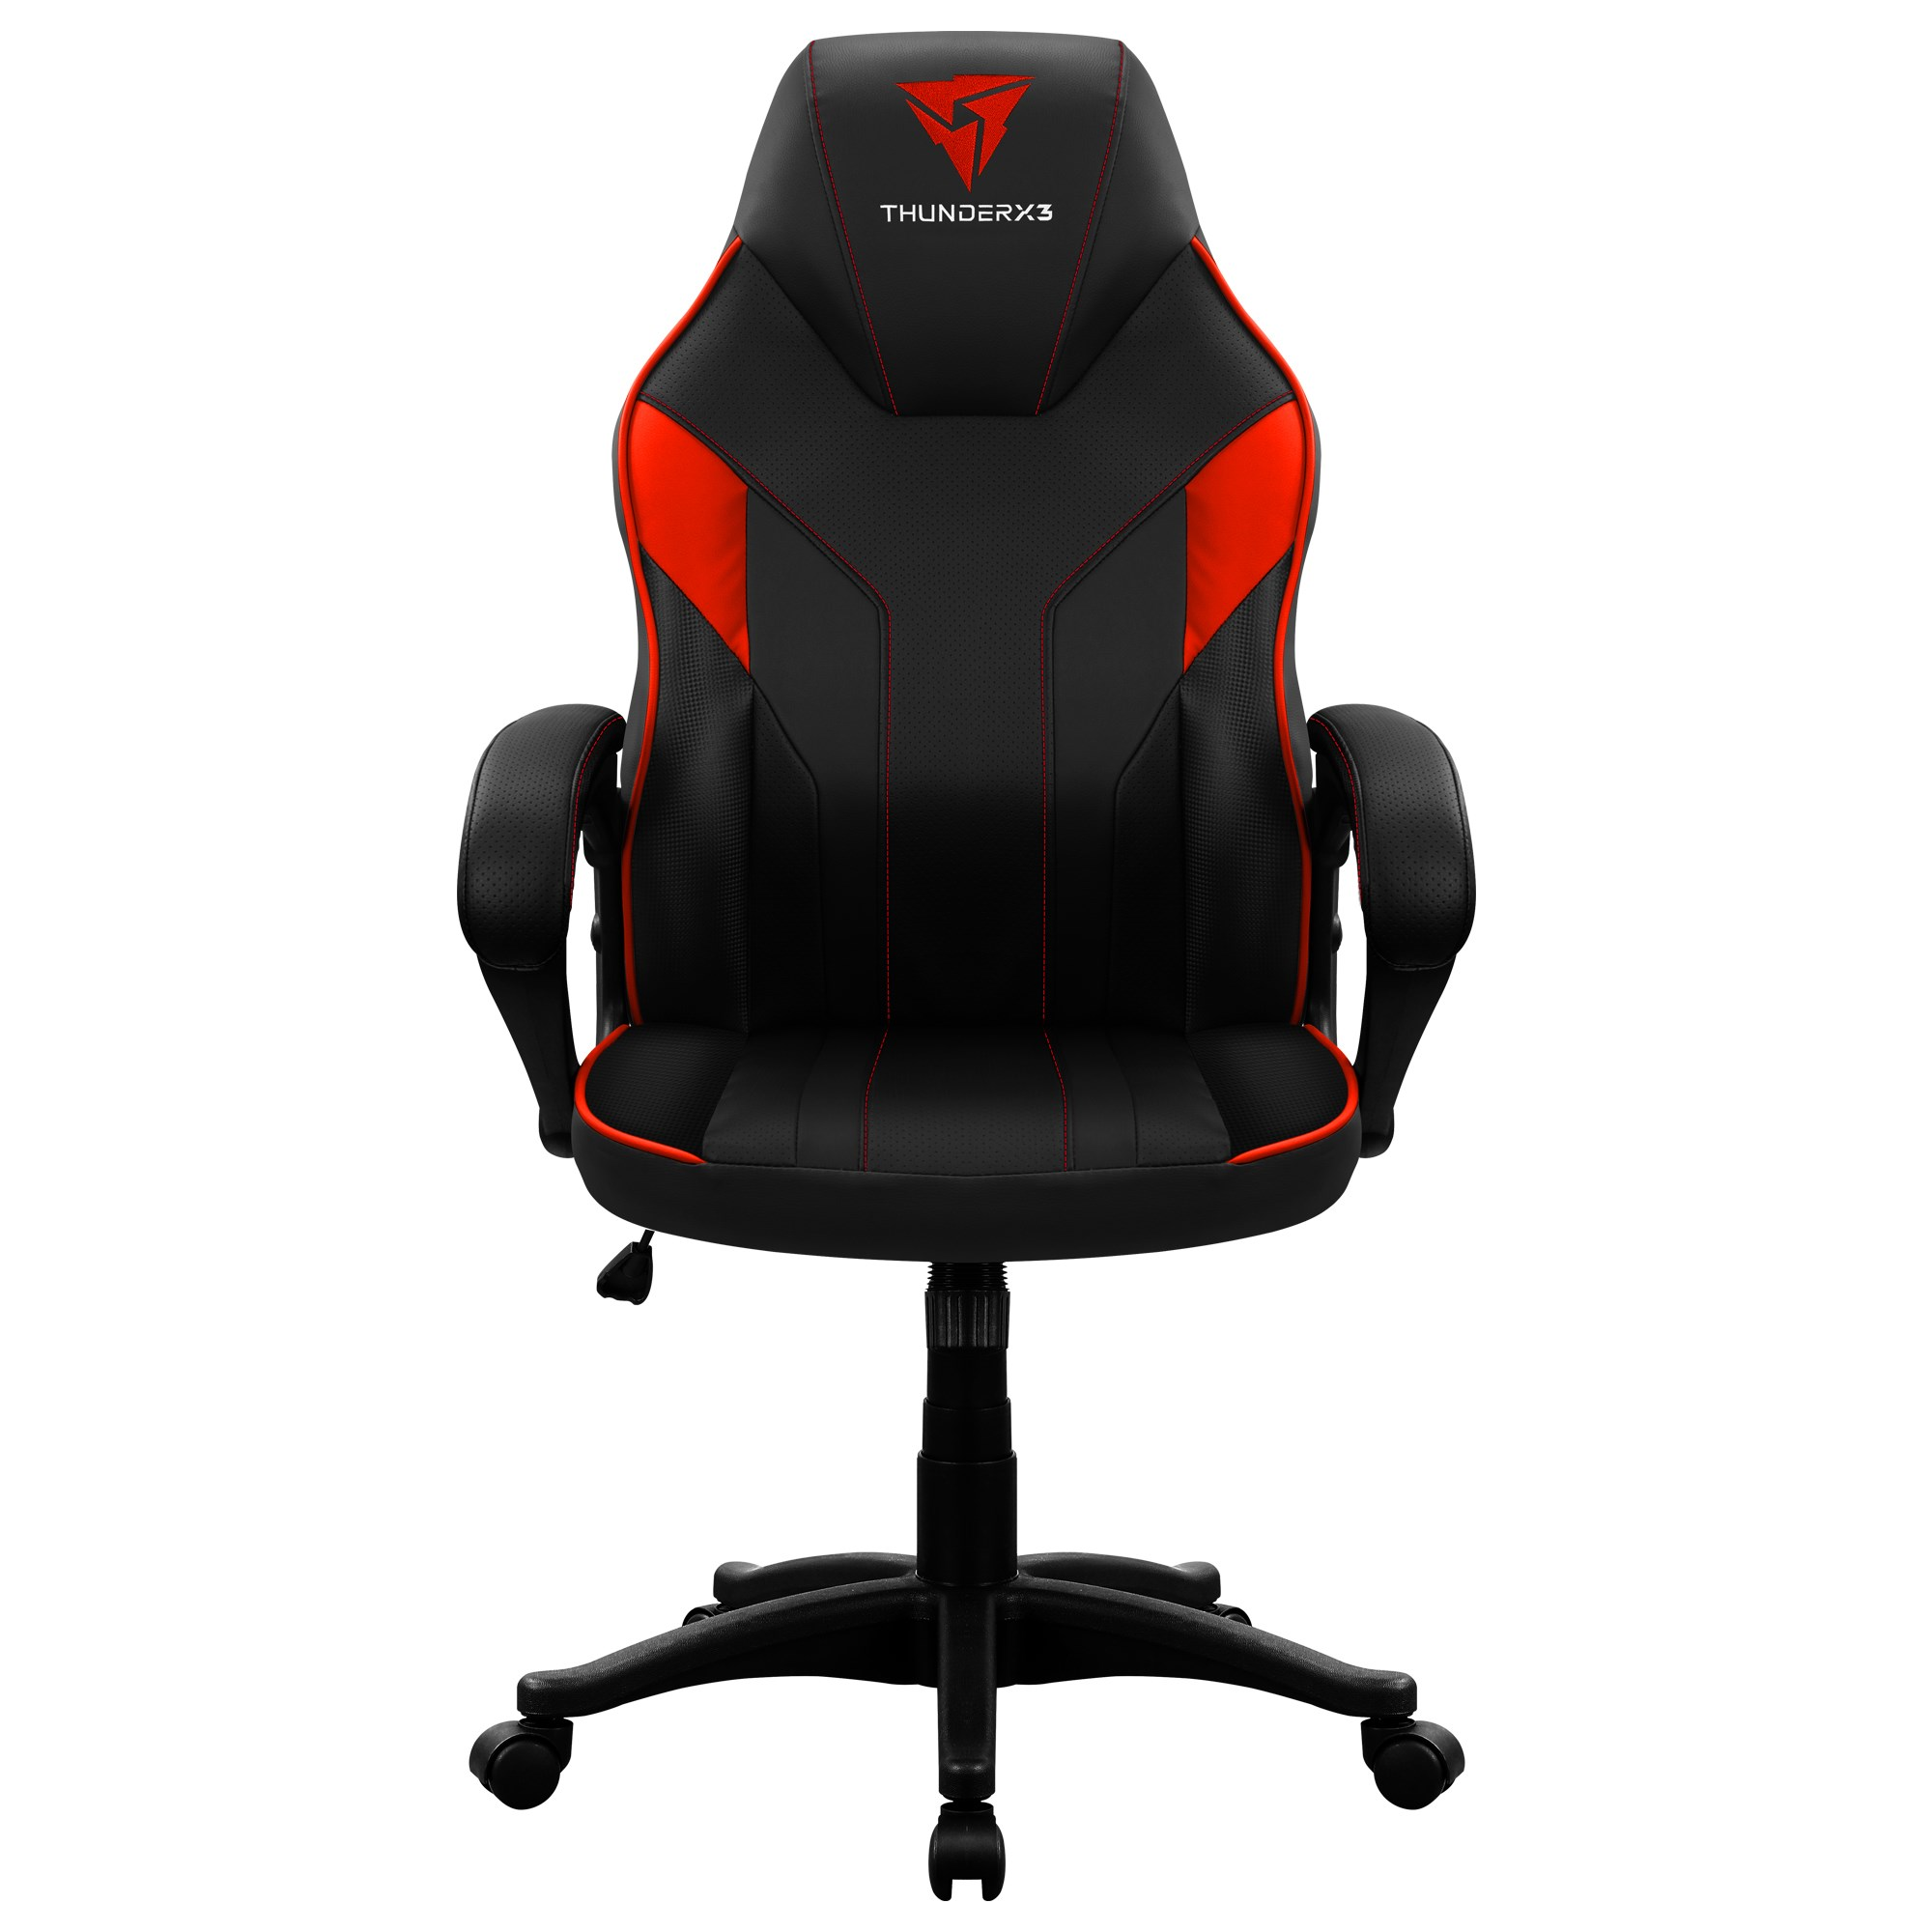 ThunderX3 EC1, Chair Gaming Ergonomic, Technology AIR, Armrest Padded, Adjustable Height, Red